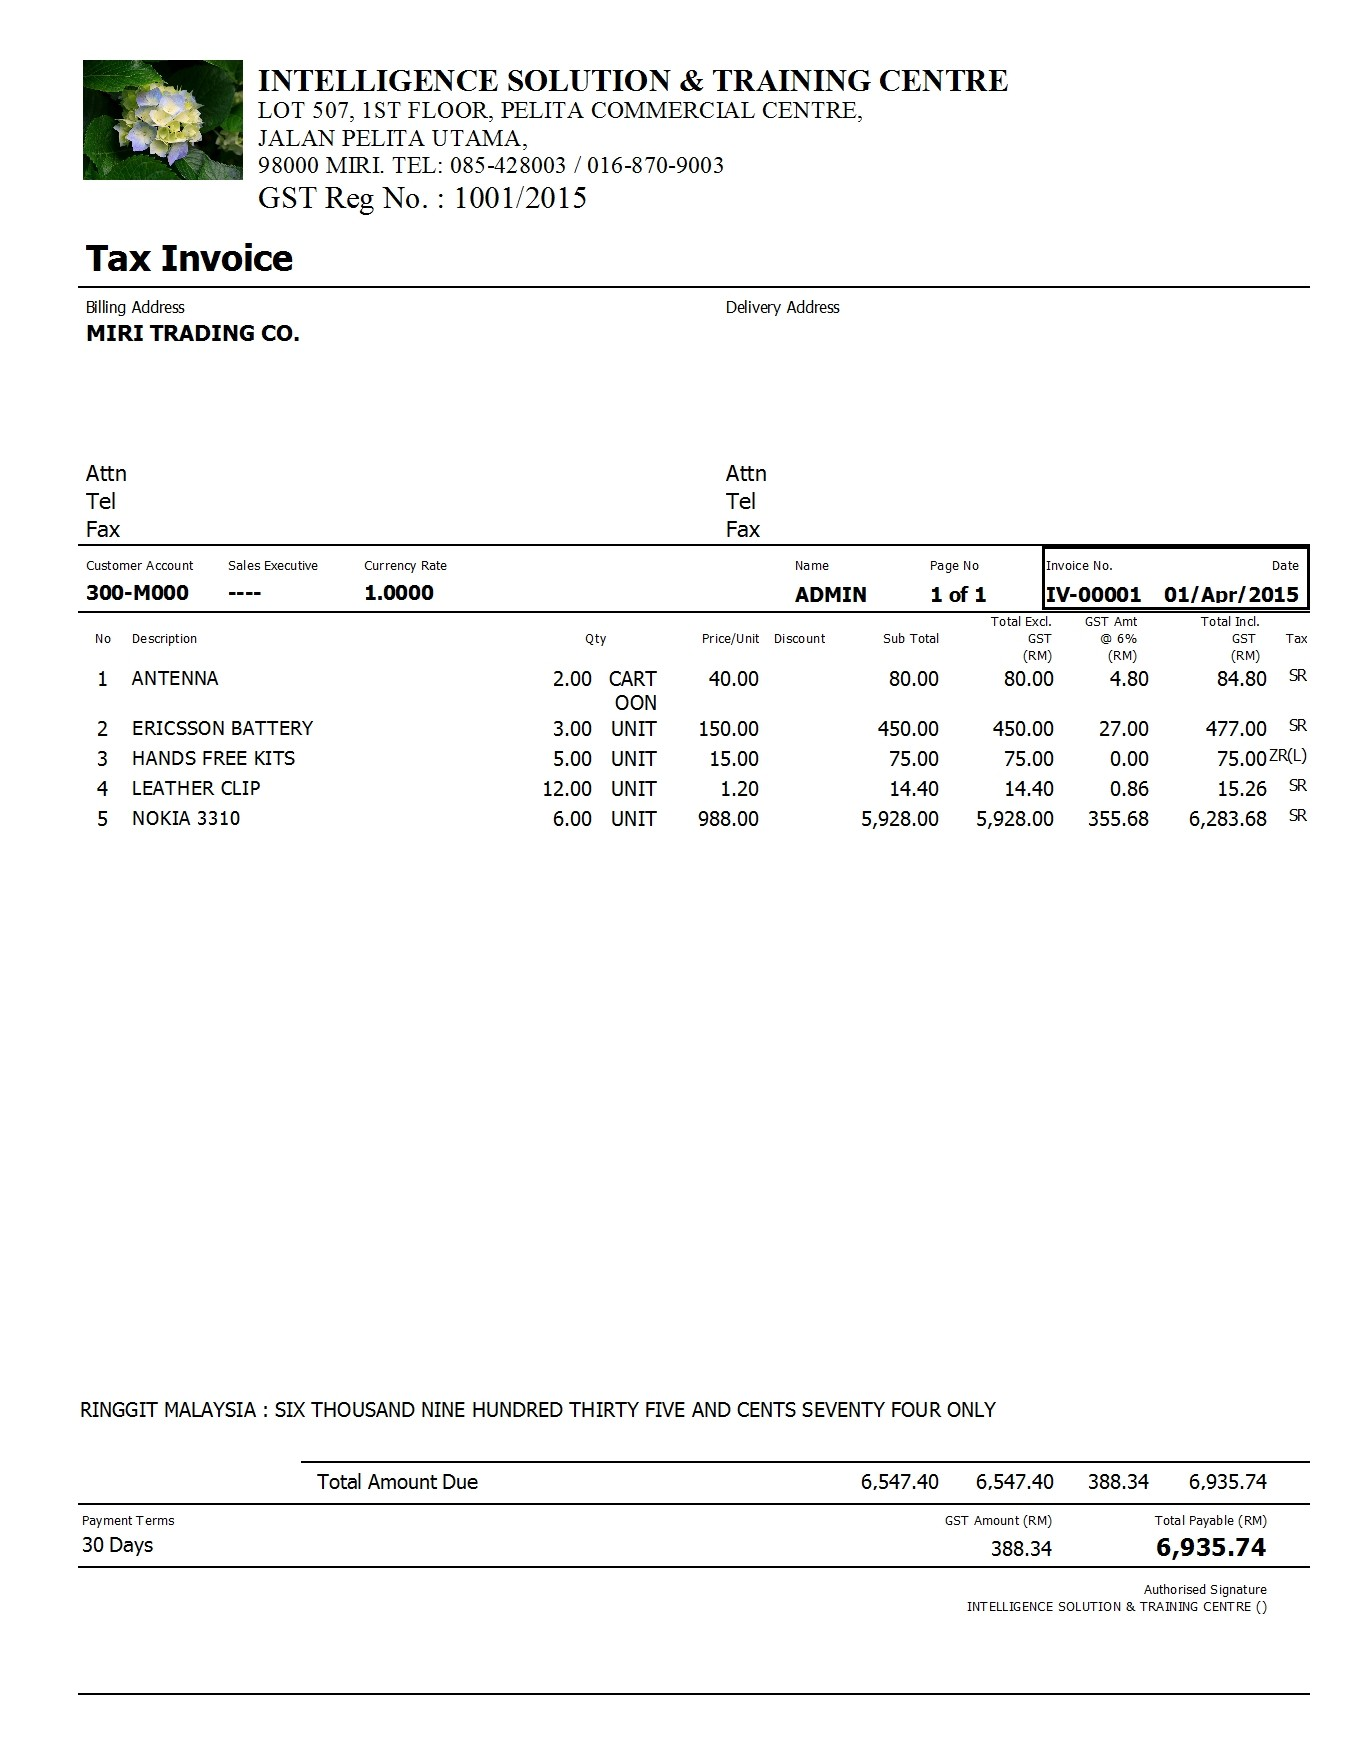 Gst Tax Invoice Template invoice template australian gst – Example of Tax Invoice